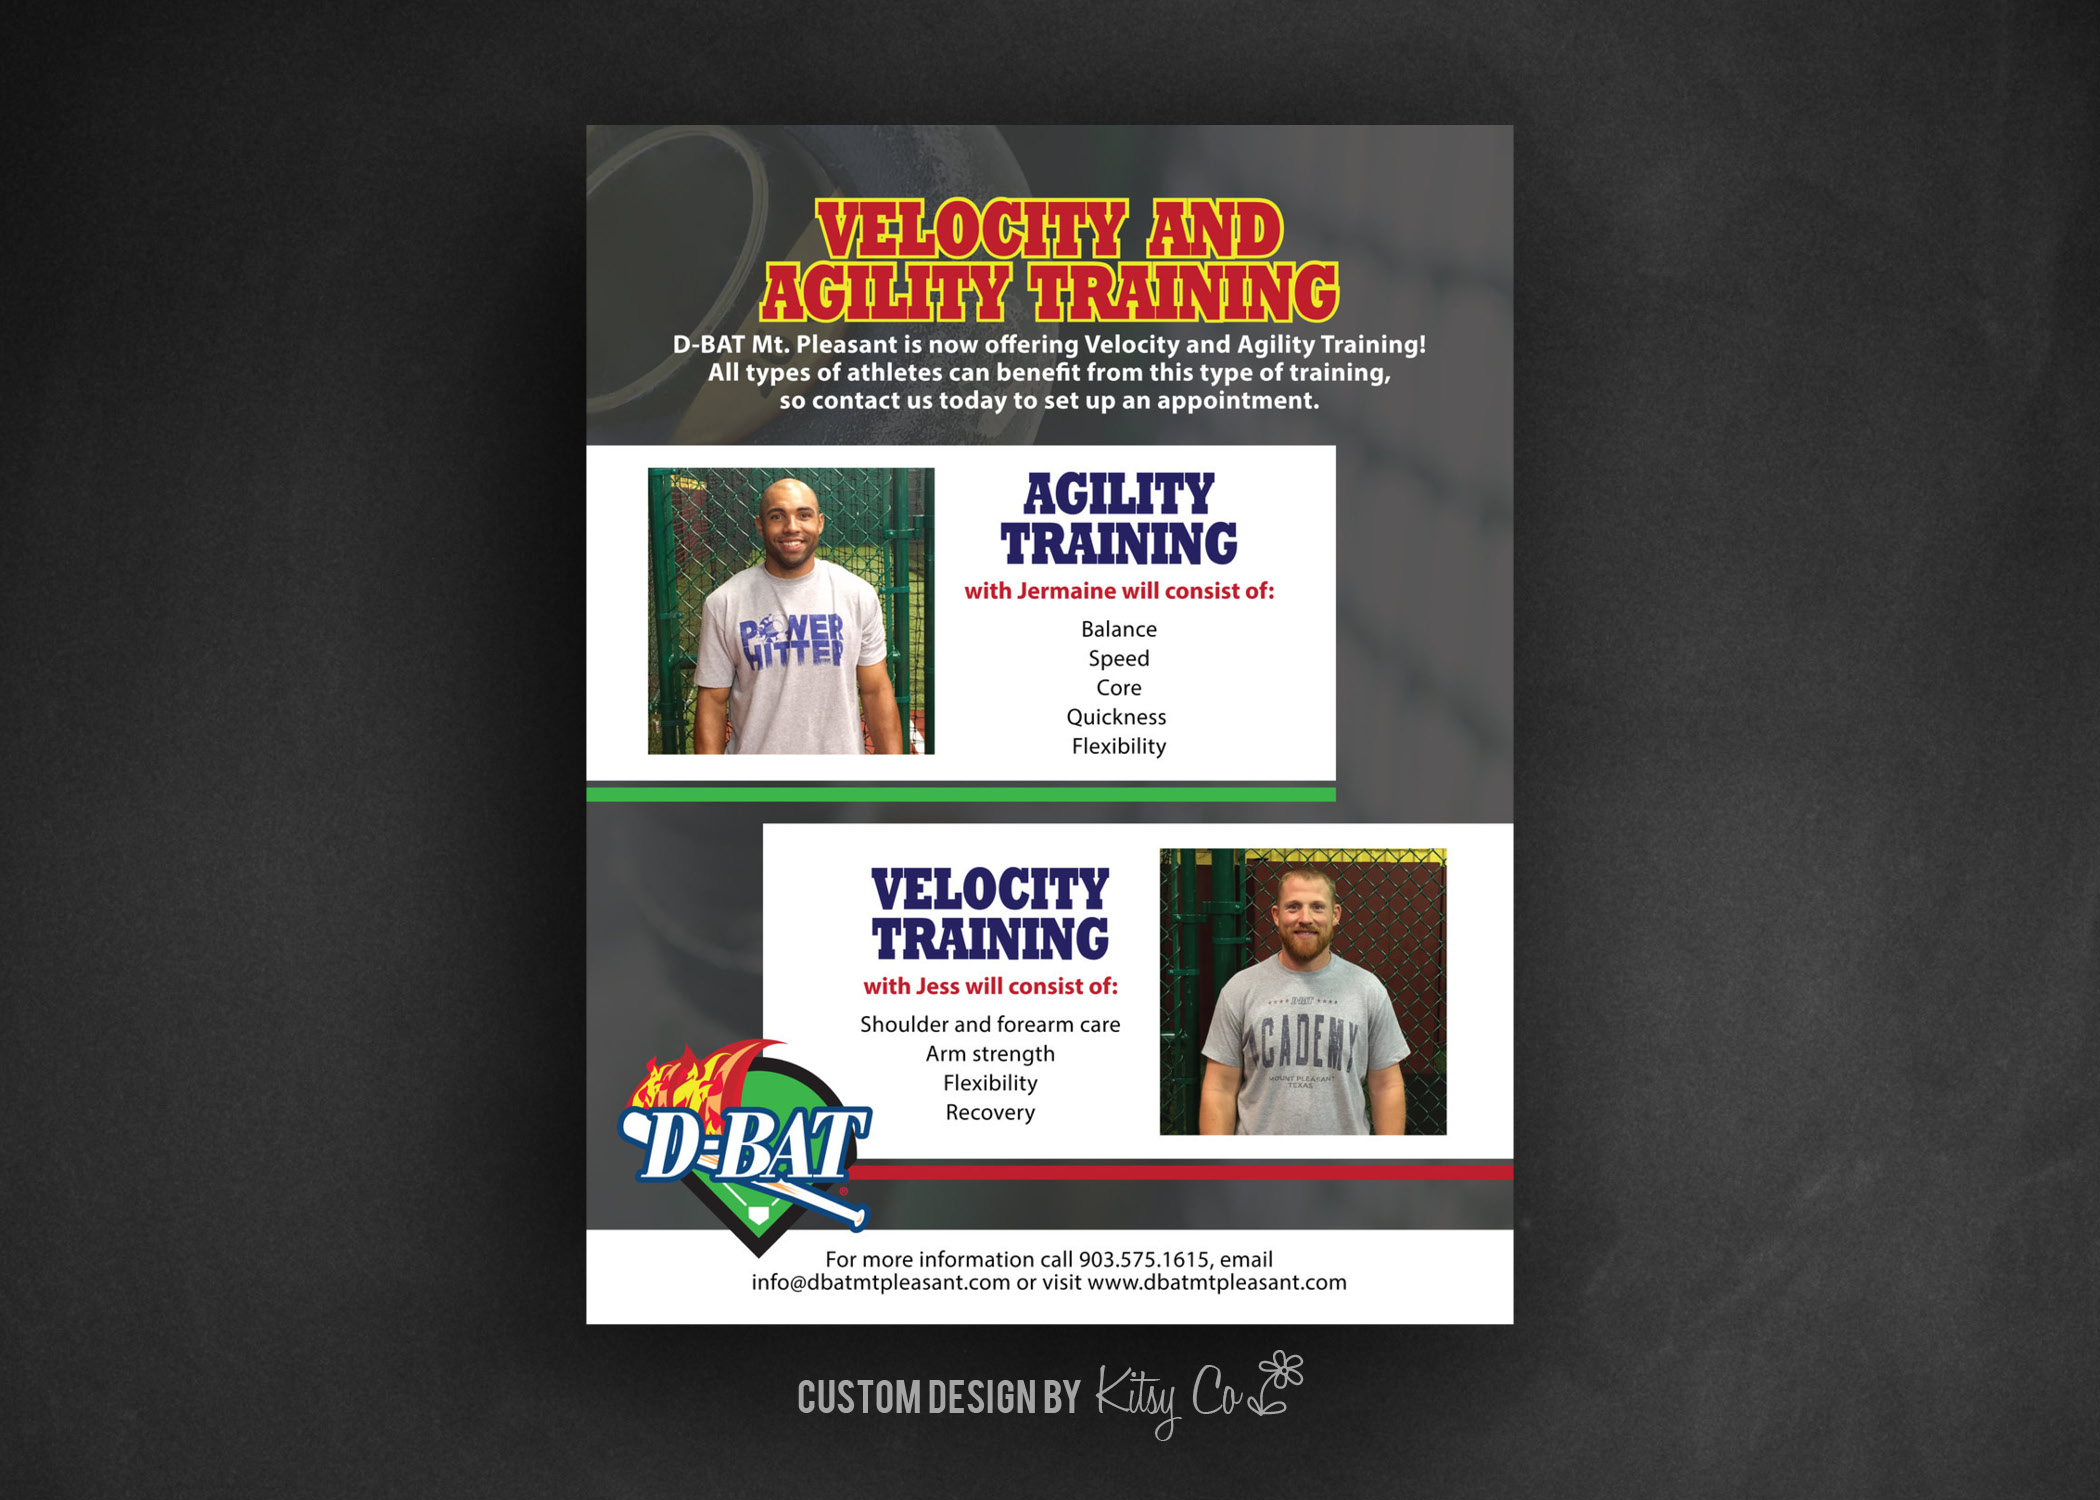 Velocity and Agility Training